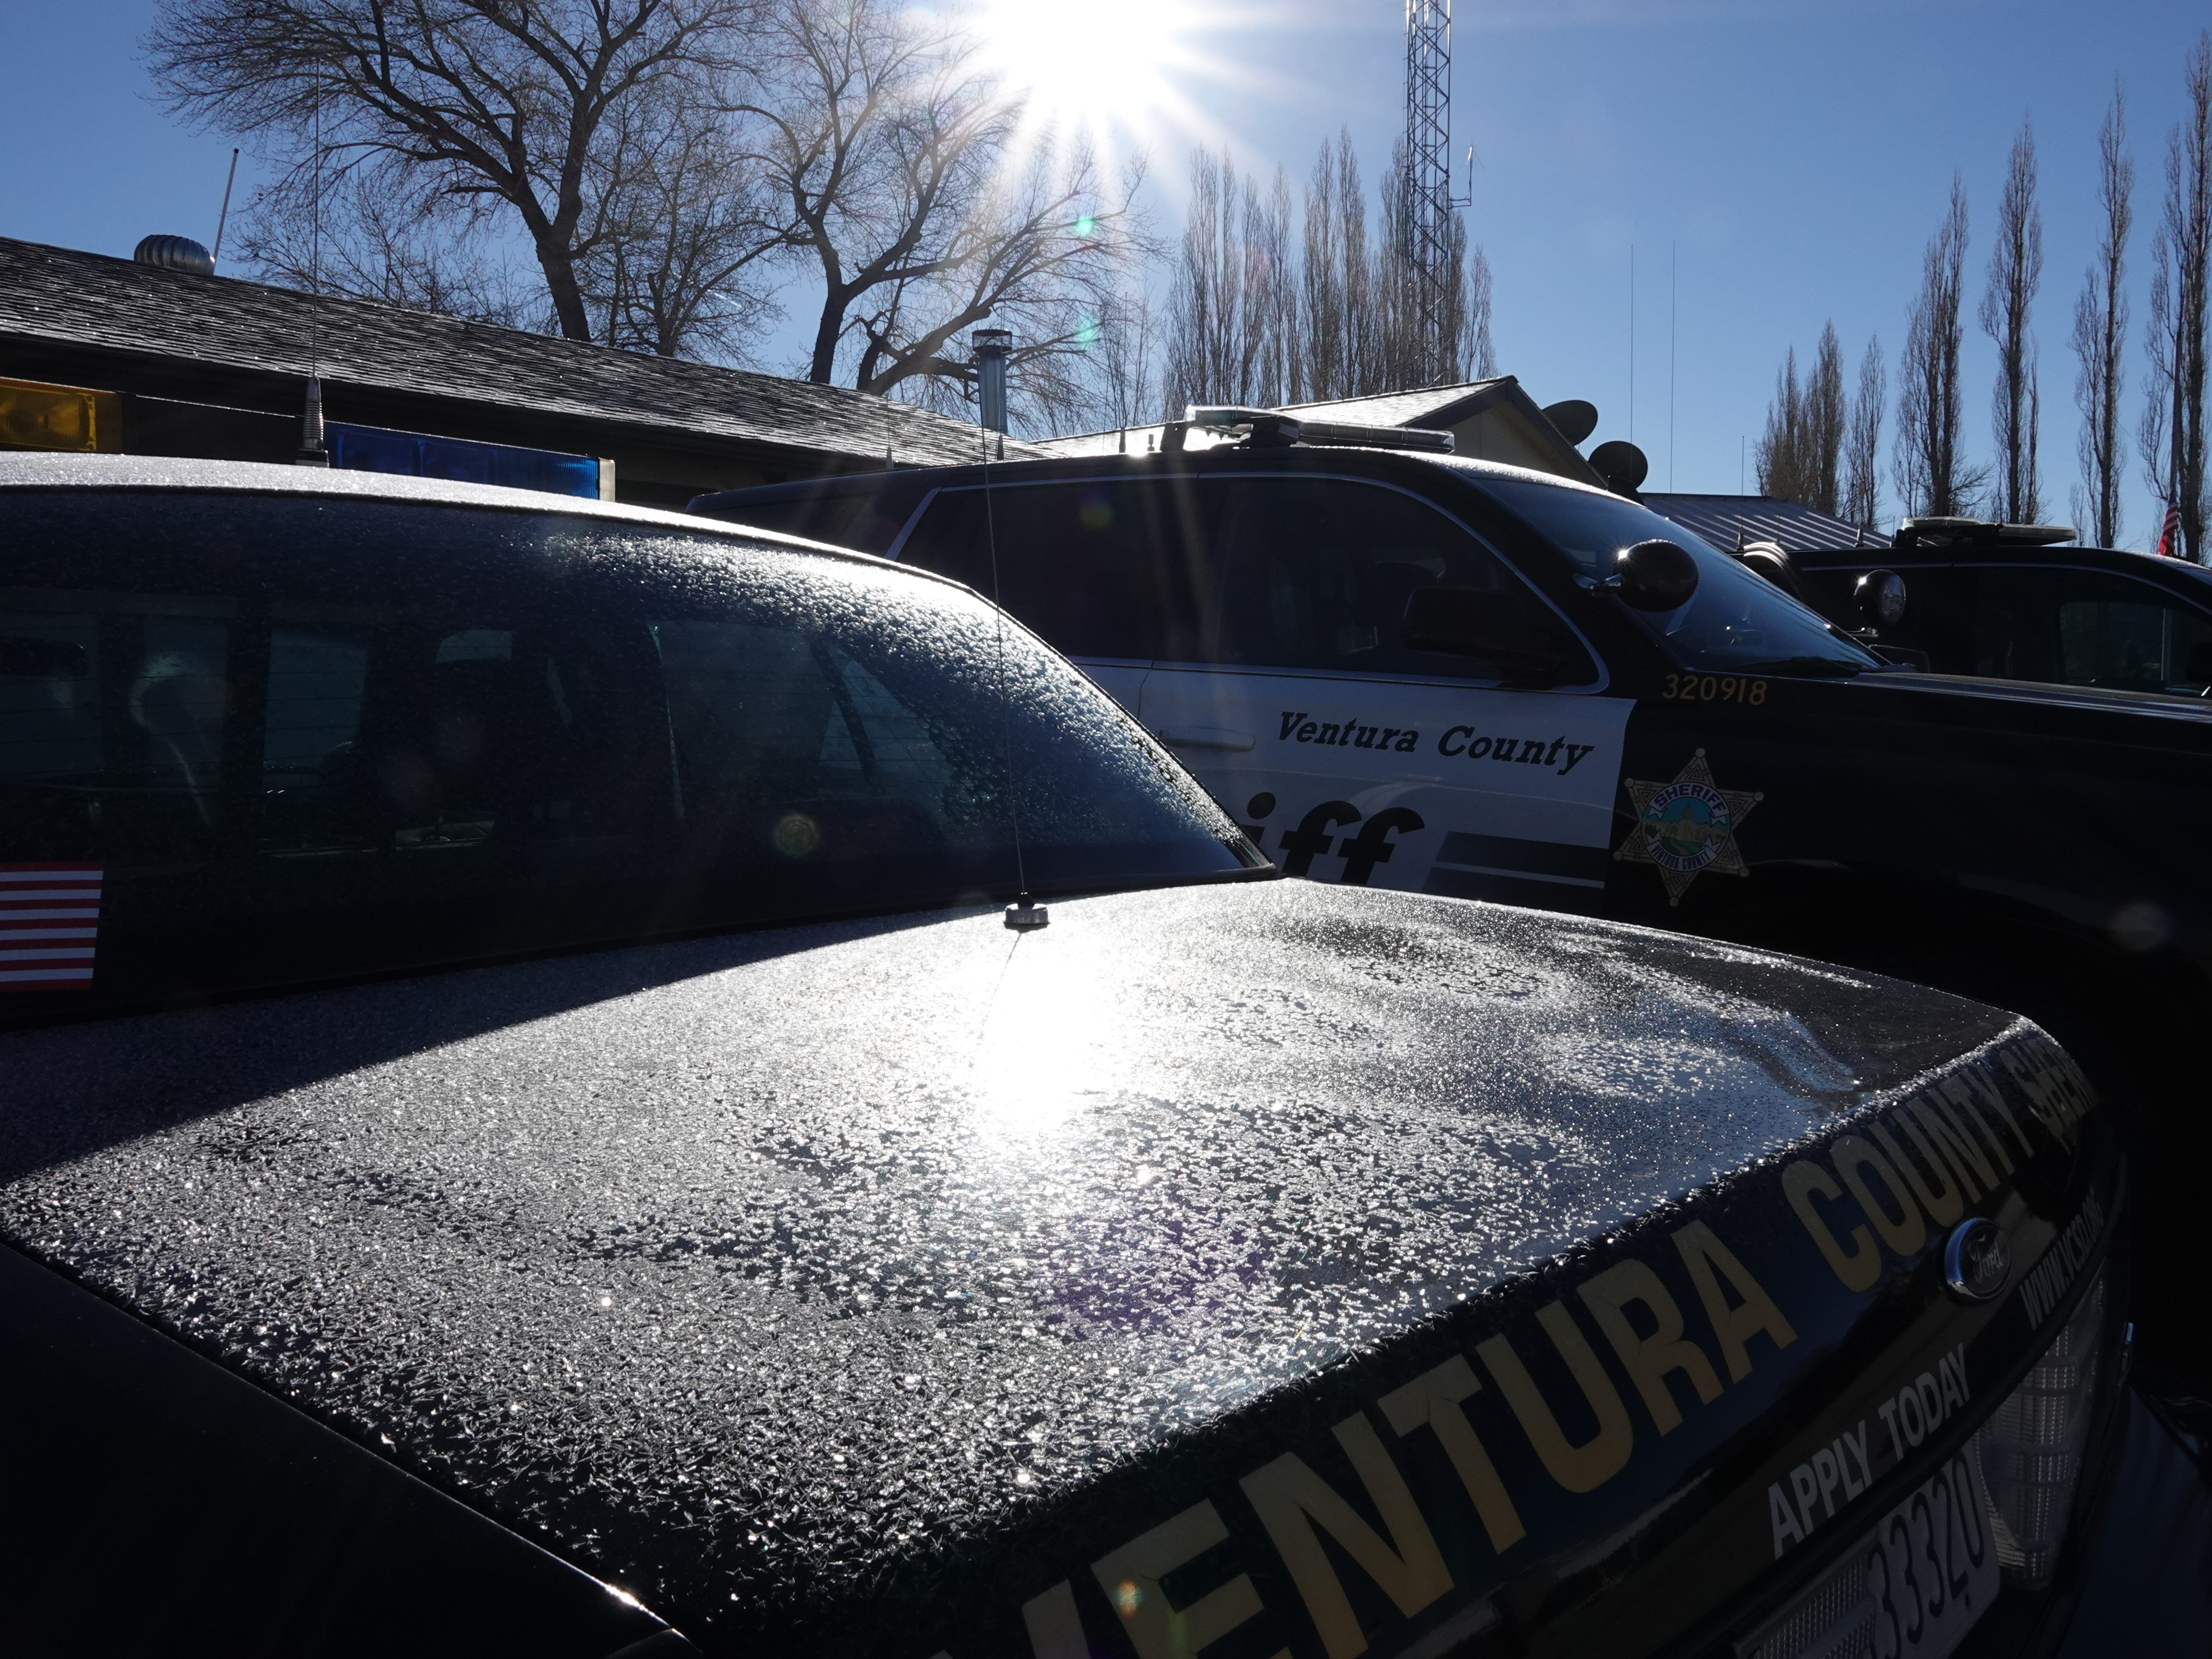 Patrol cars were icy outside the Ventura County sheriff's Lockwood Valley substation where the temperature was 18 degrees on the morning of Dec. 29. Two live-in deputies at the station oversee 610 square miles.